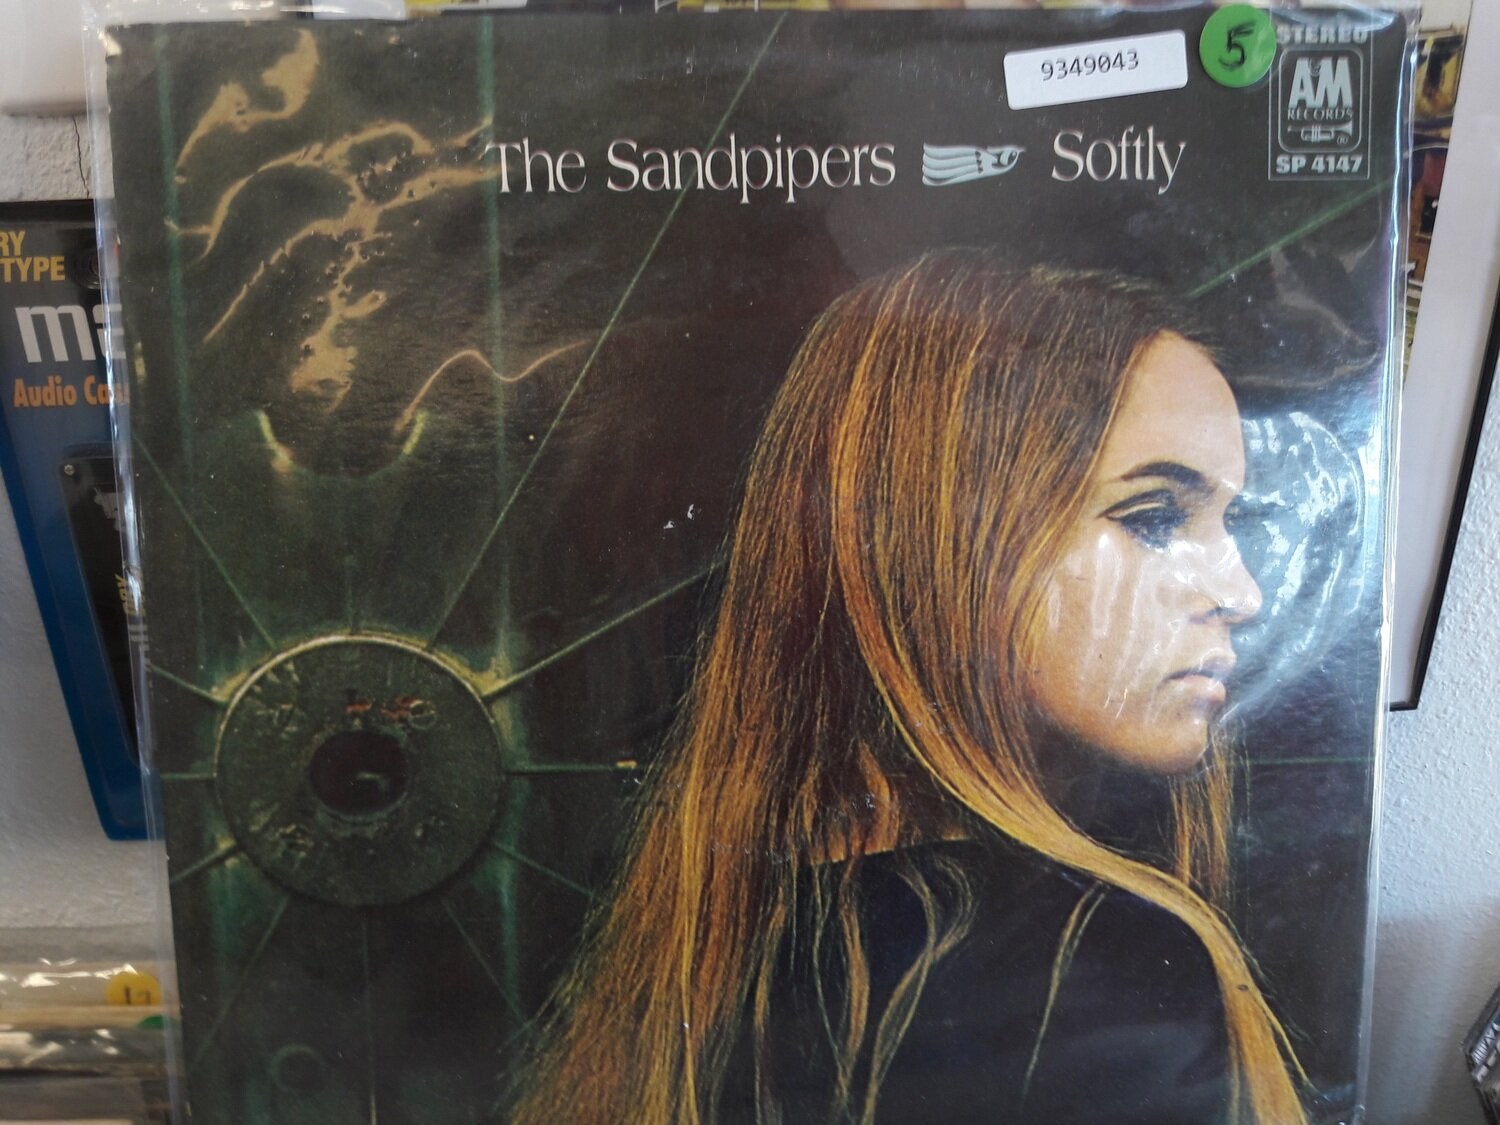 Sandpiper, The -  Softly